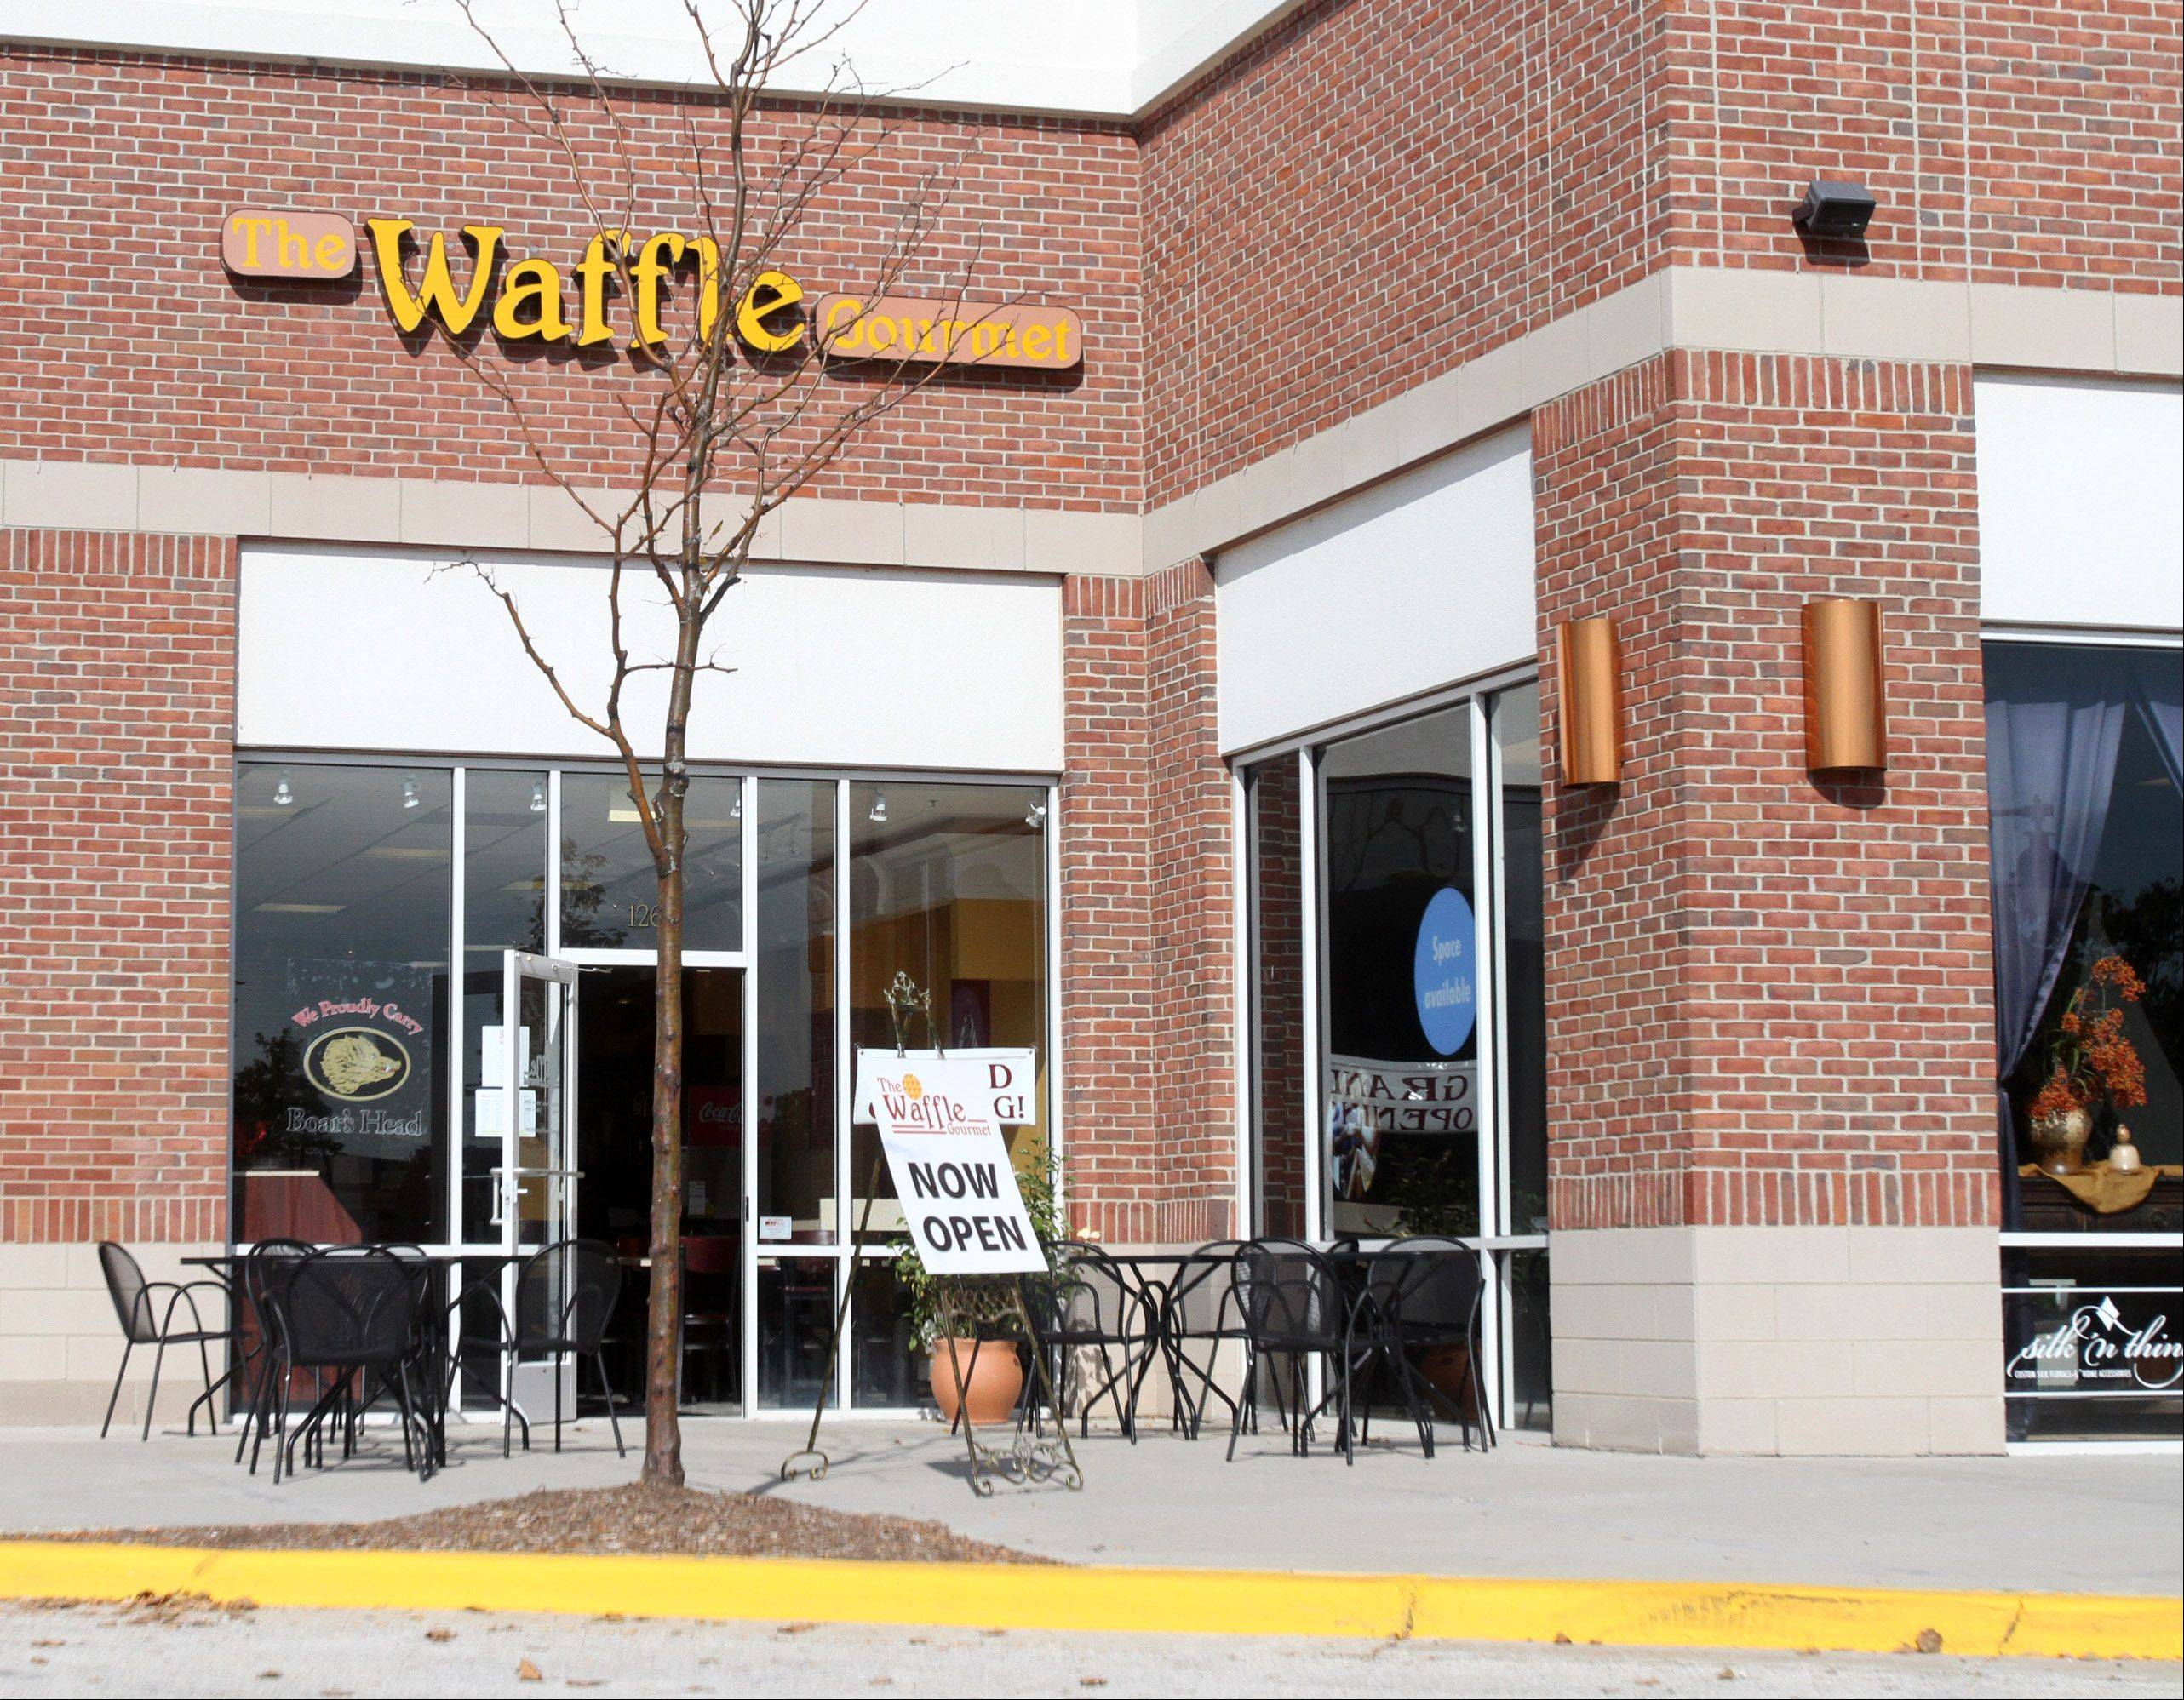 The Waffle Gourmet at Deer Park Town Center in Deer Park on Tuesday, October 11th.